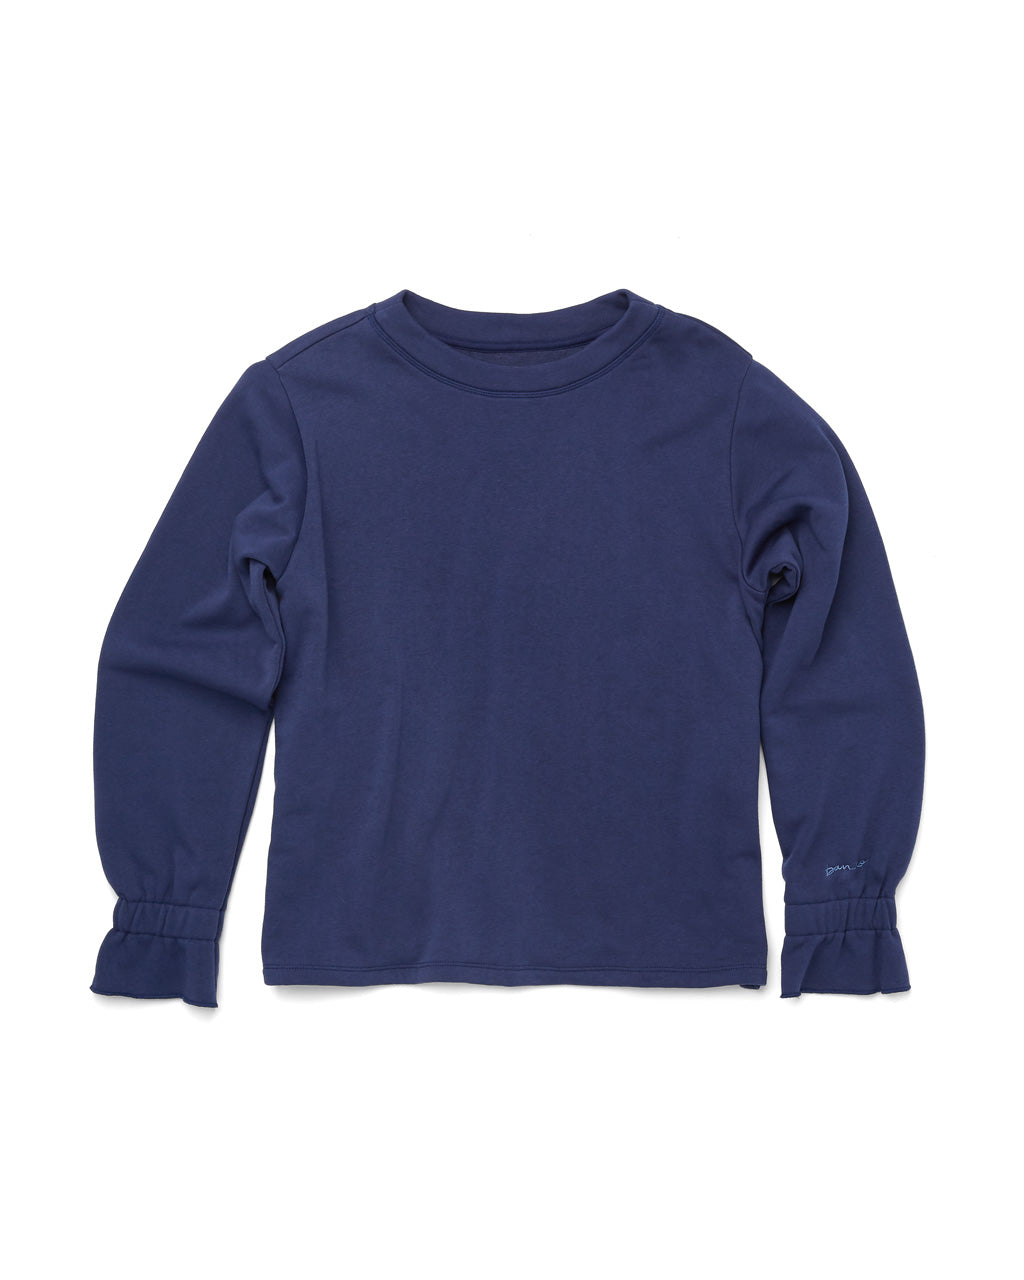 flat view of navy blue sweatshirt with ruffle elastic cuffs